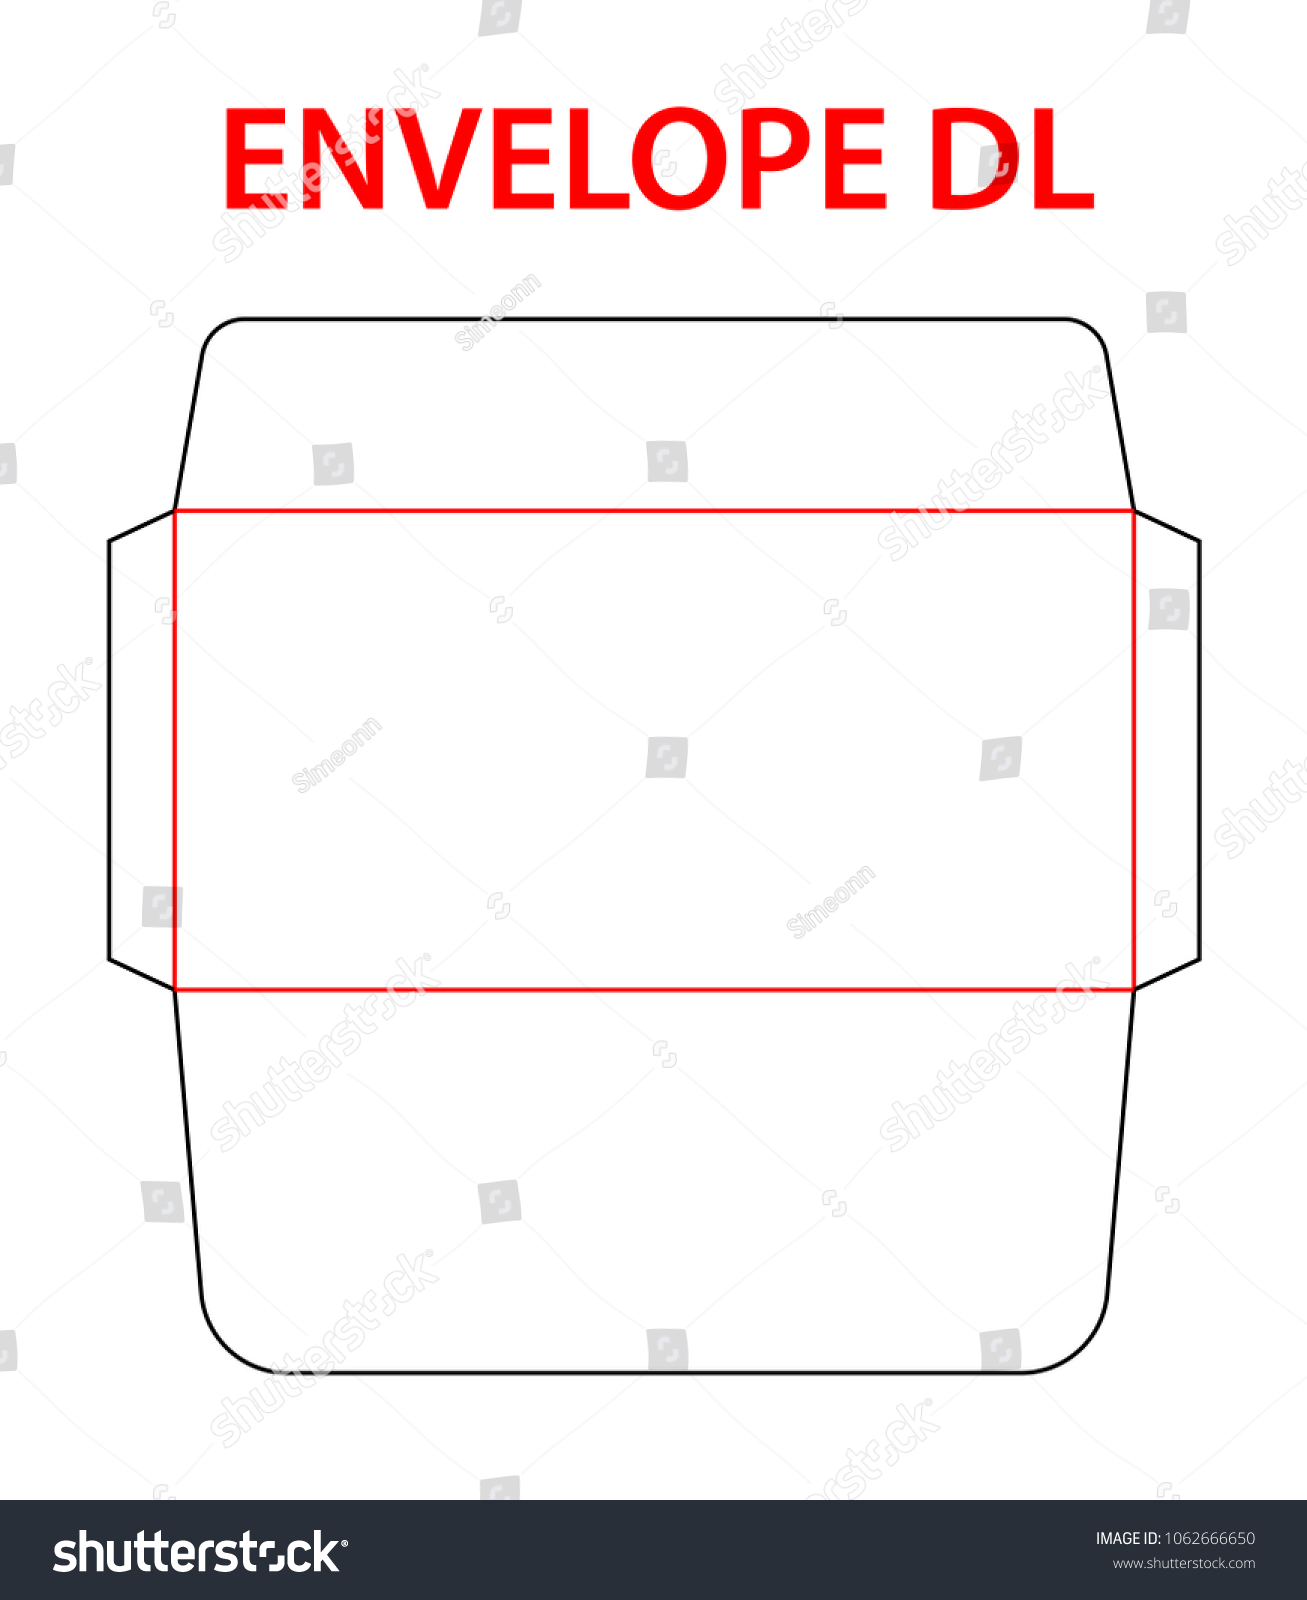 Envelope DLE 65 Size Die Cut Template Stock Vector (Royalty Free ...